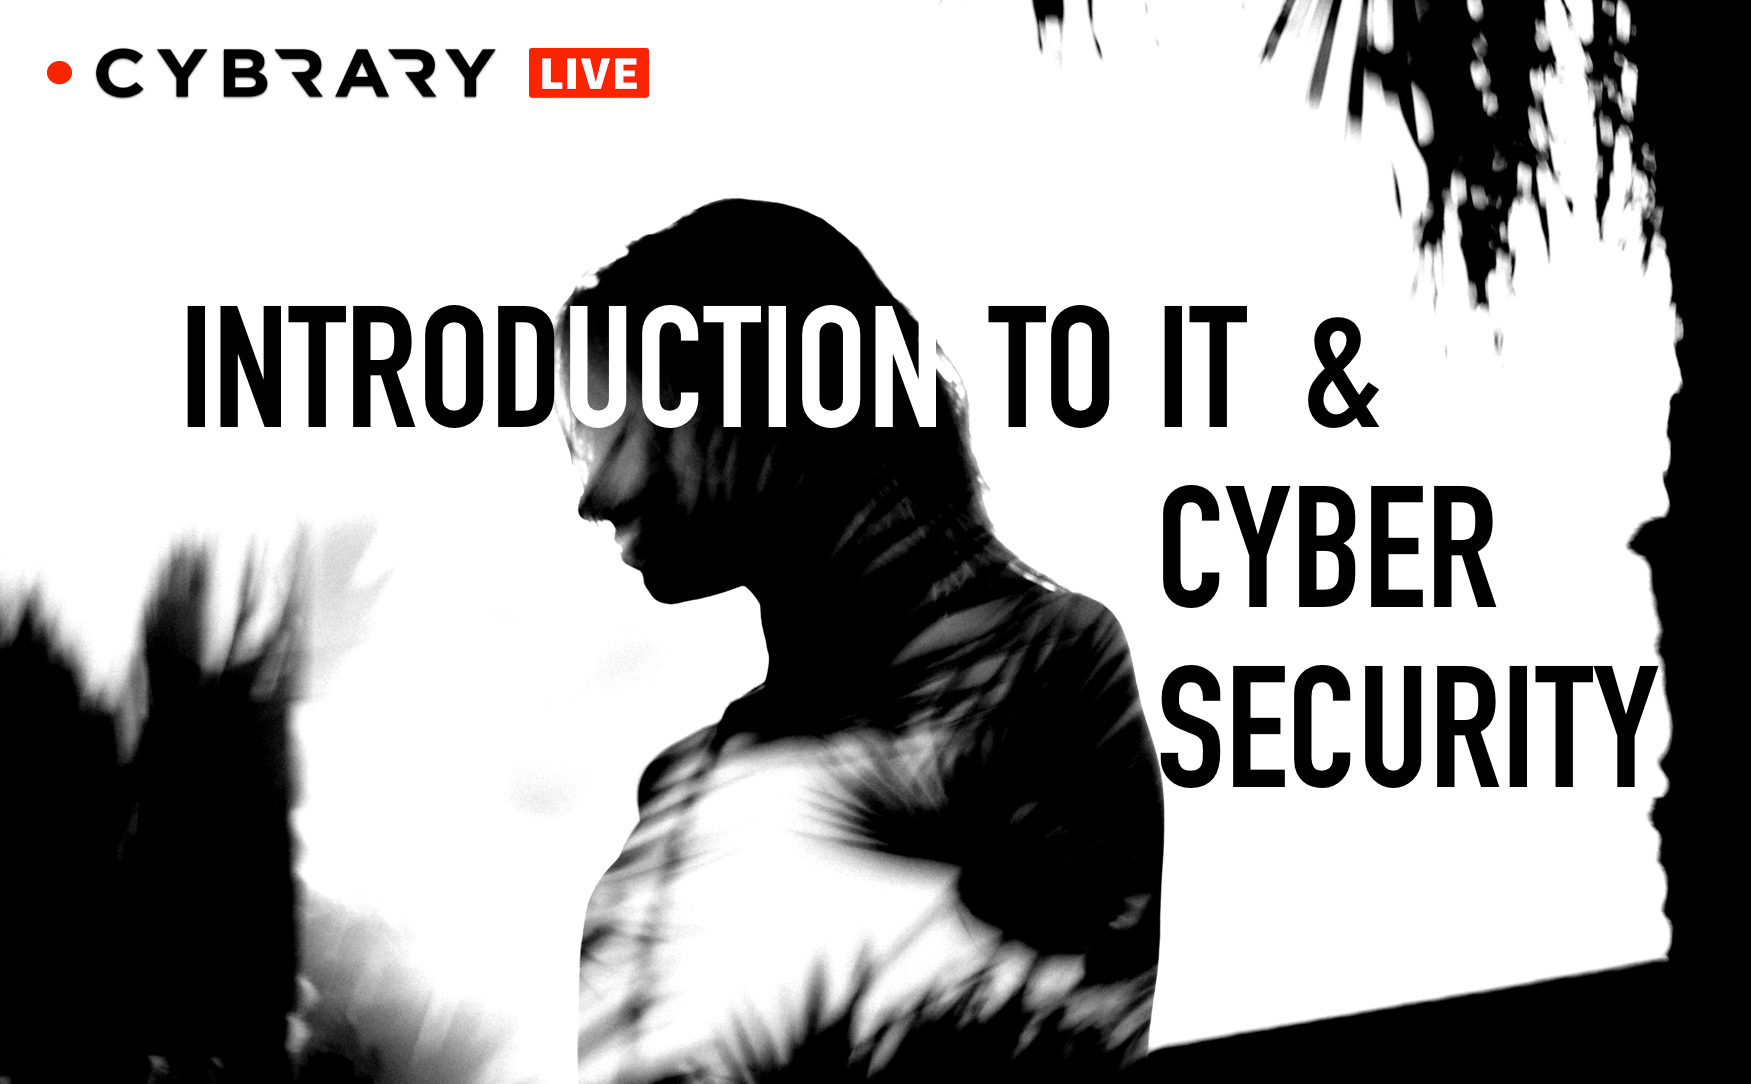 Introduction to IT and Cyber Security Live Online Training Series